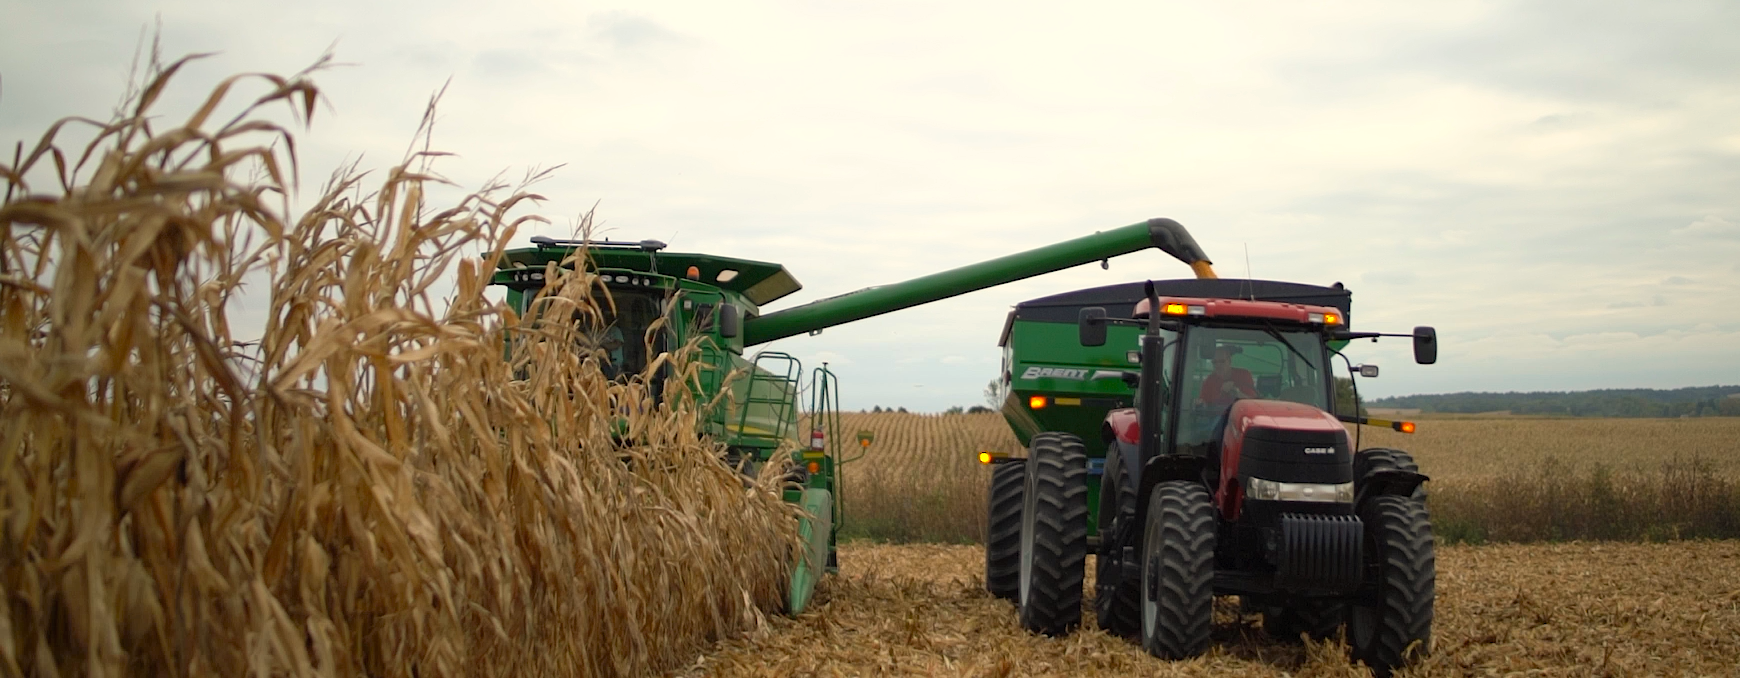 combine and tractor with grain cart